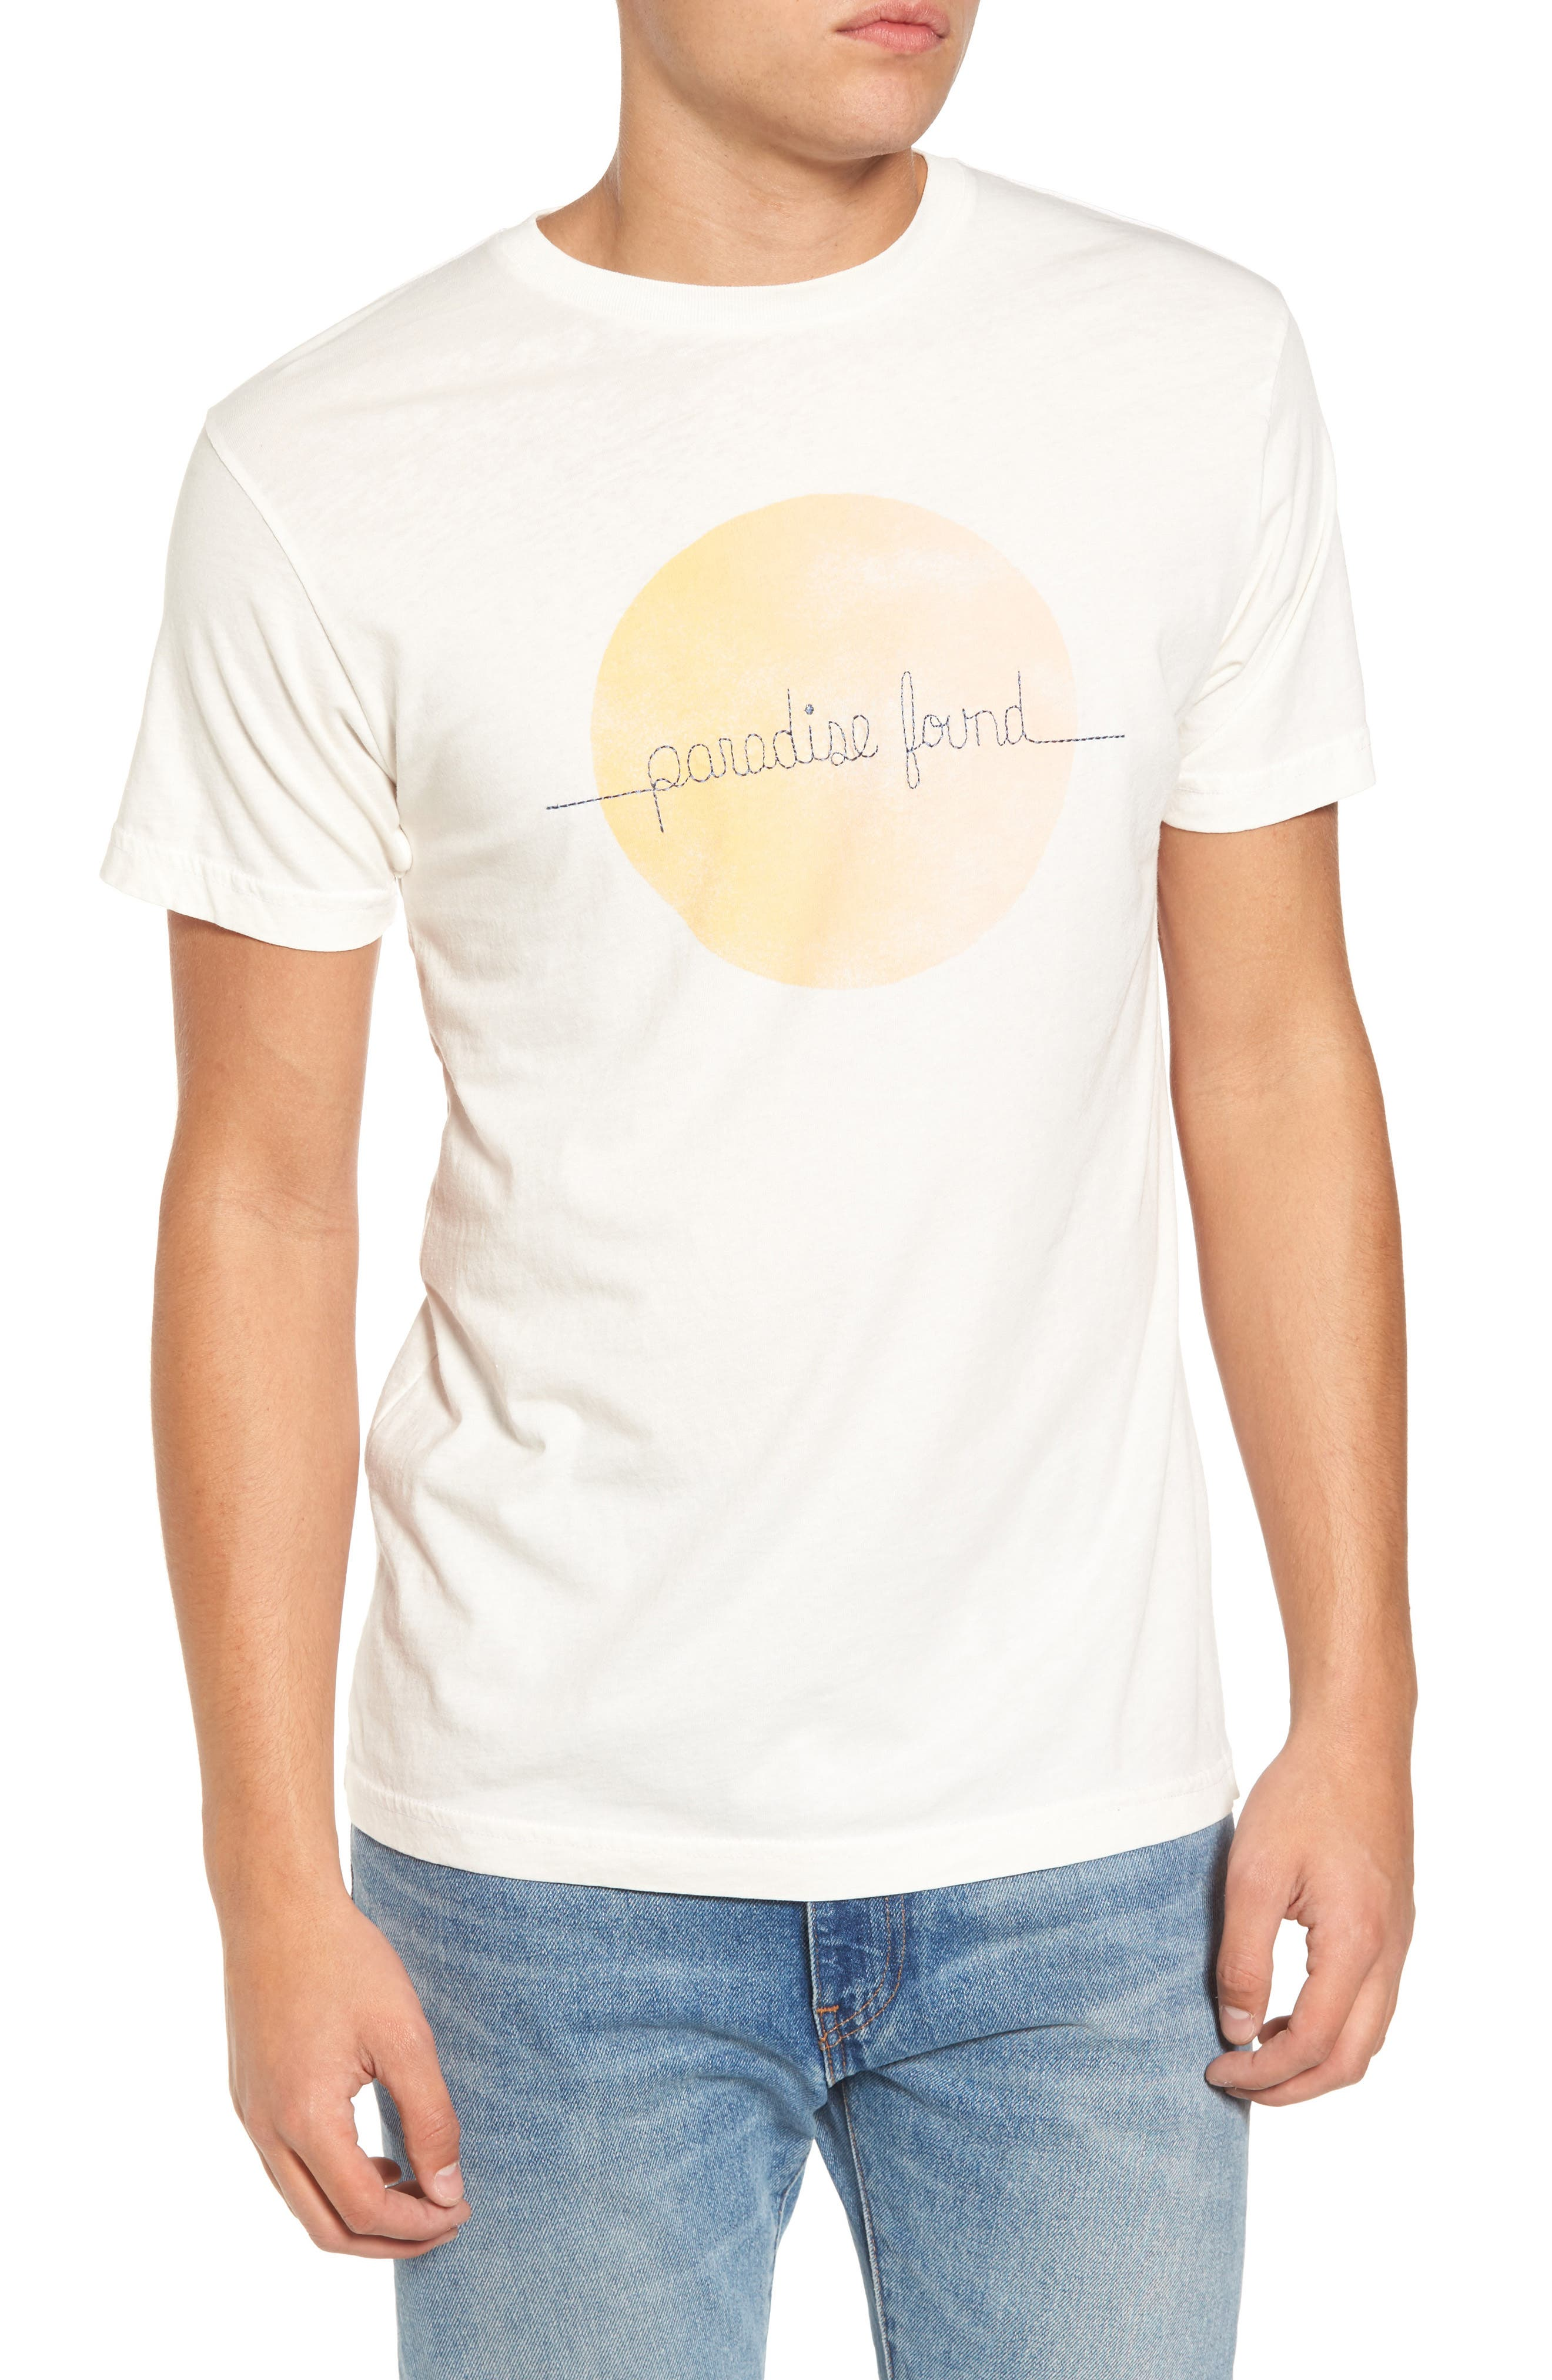 Paradise Found Embroidered T-Shirt,                         Main,                         color, 101